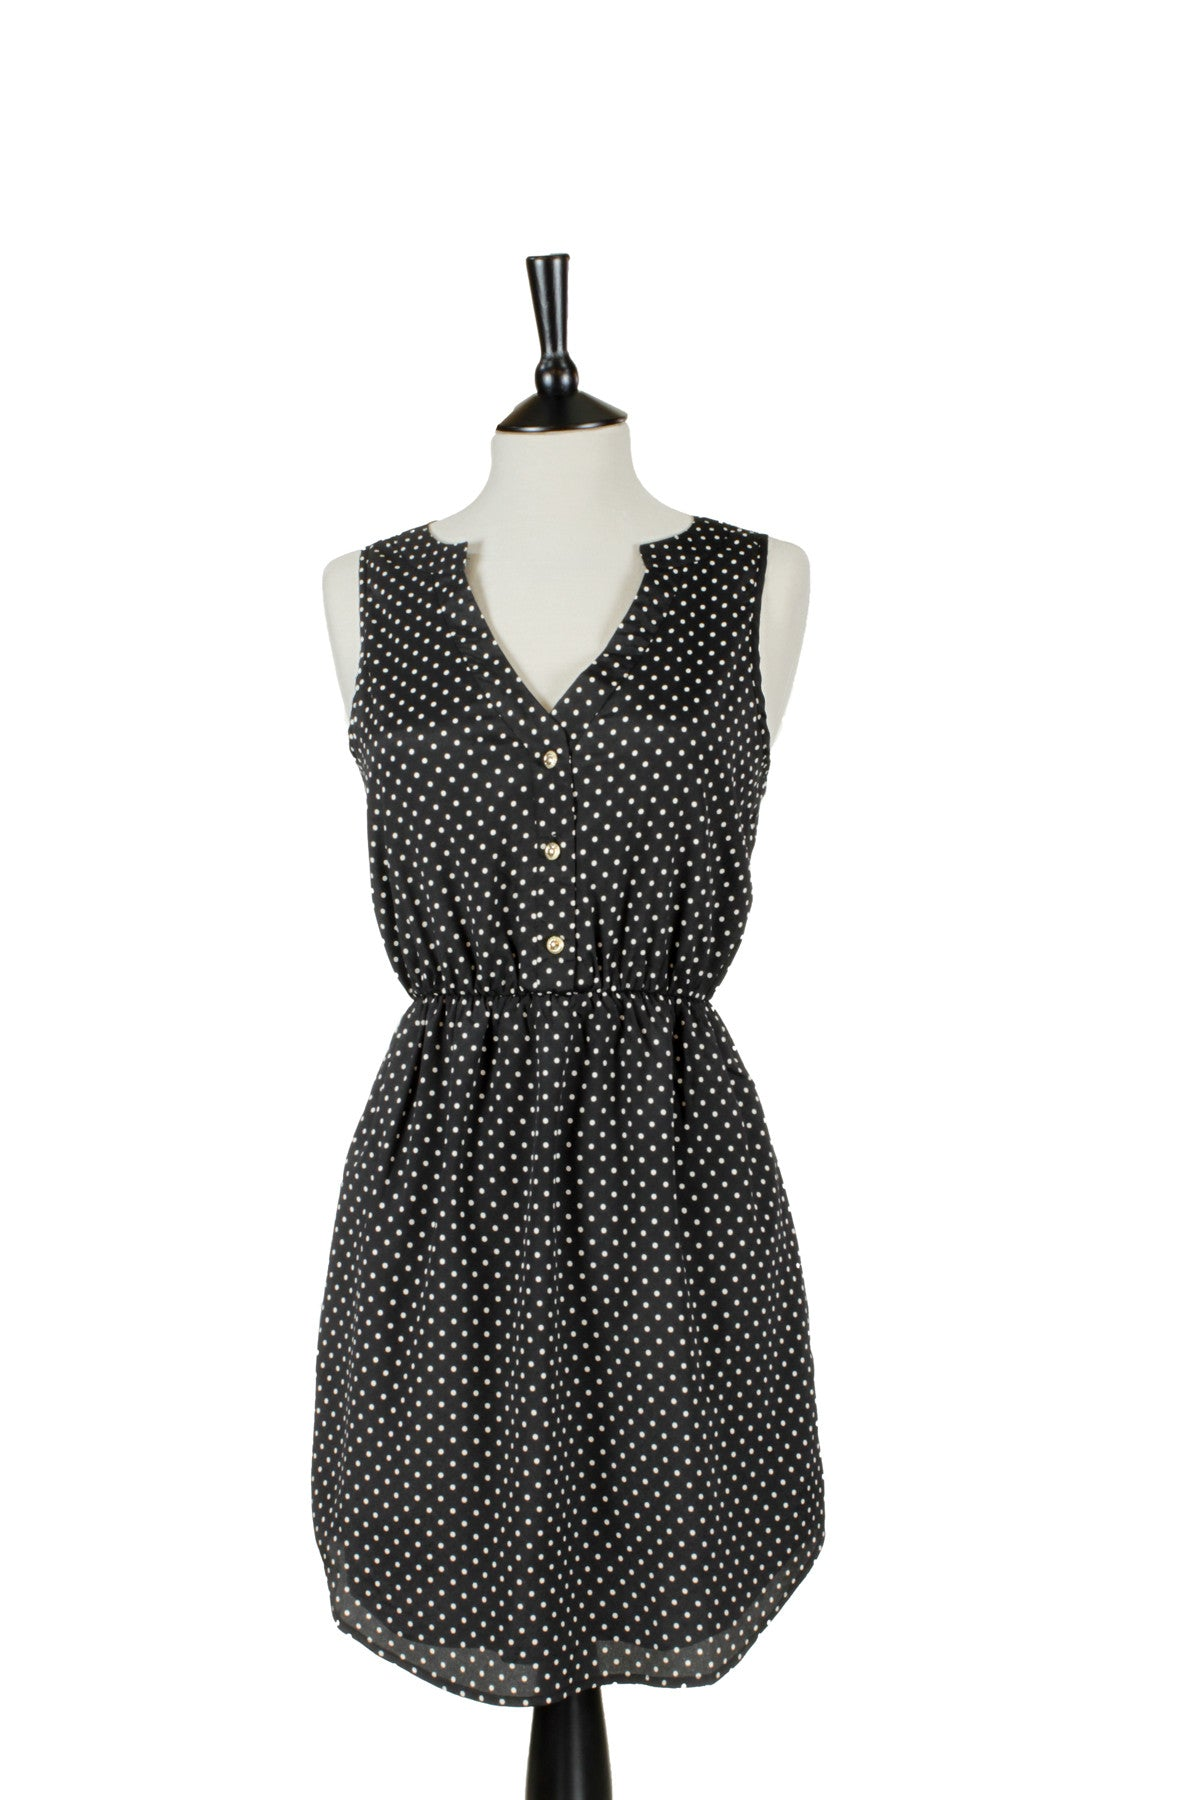 Agata Polka Dot Sleeveless Dress - Black